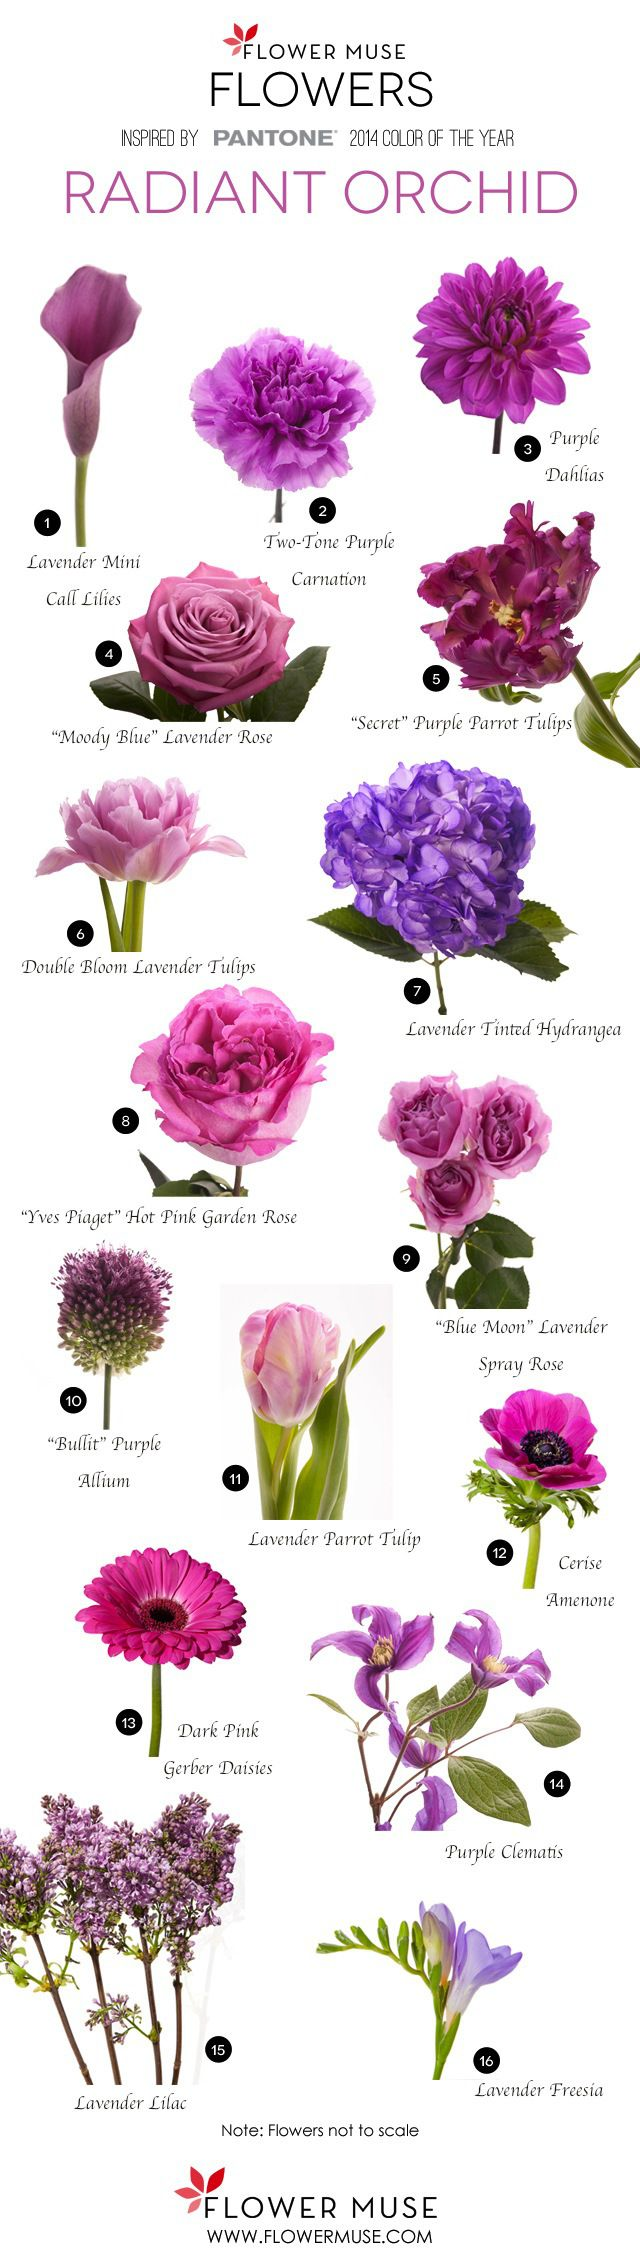 Credit: flowermuse.com FLOWER NAMES BY COLOR! Pick your bridal flowers by color!!